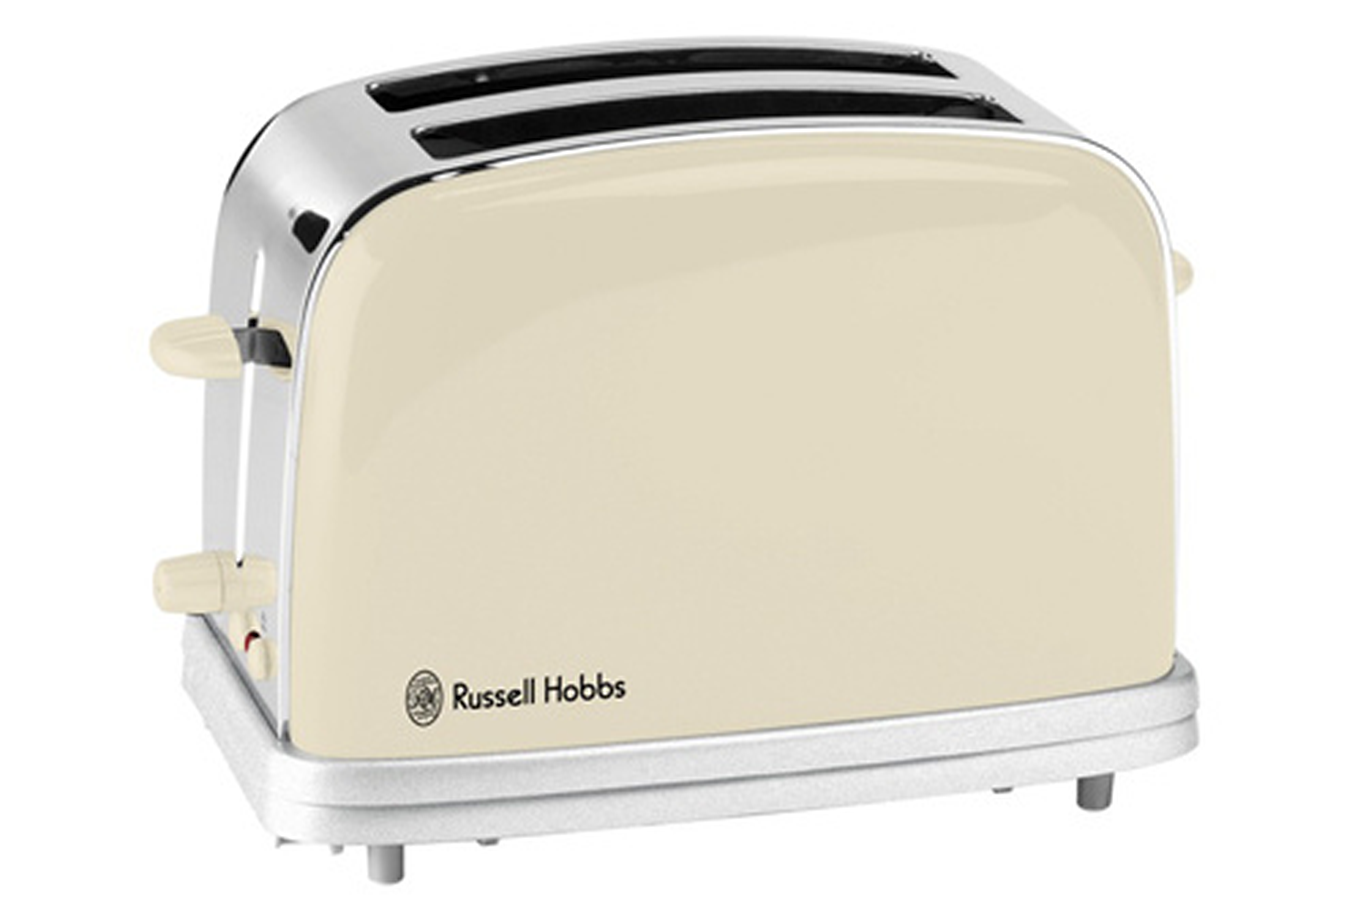 Grille pain russell hobbs 18010 56 toaster creme 18010 56 toast creme 3201180 darty - Grille pain russel hobbs ...